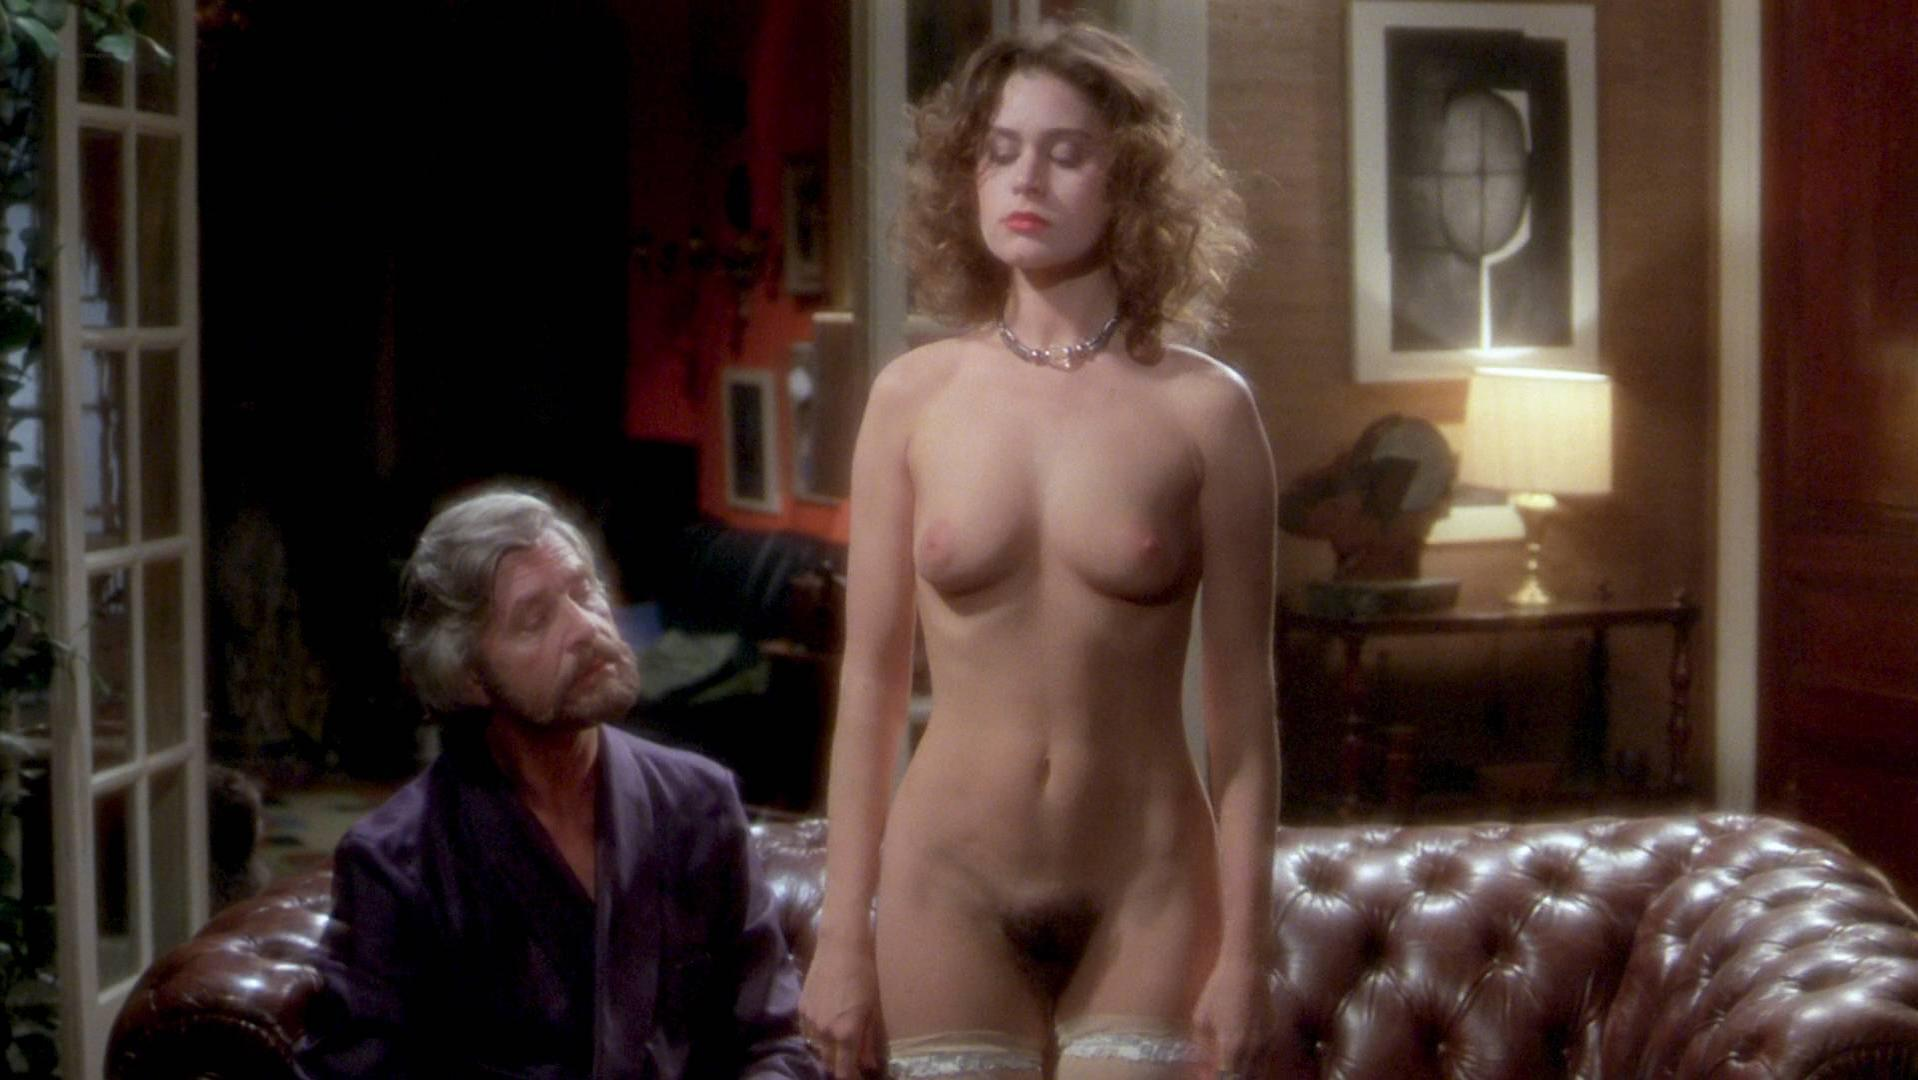 Corinne Clery nude, Li Sellgren nude - The Story of O (1975)